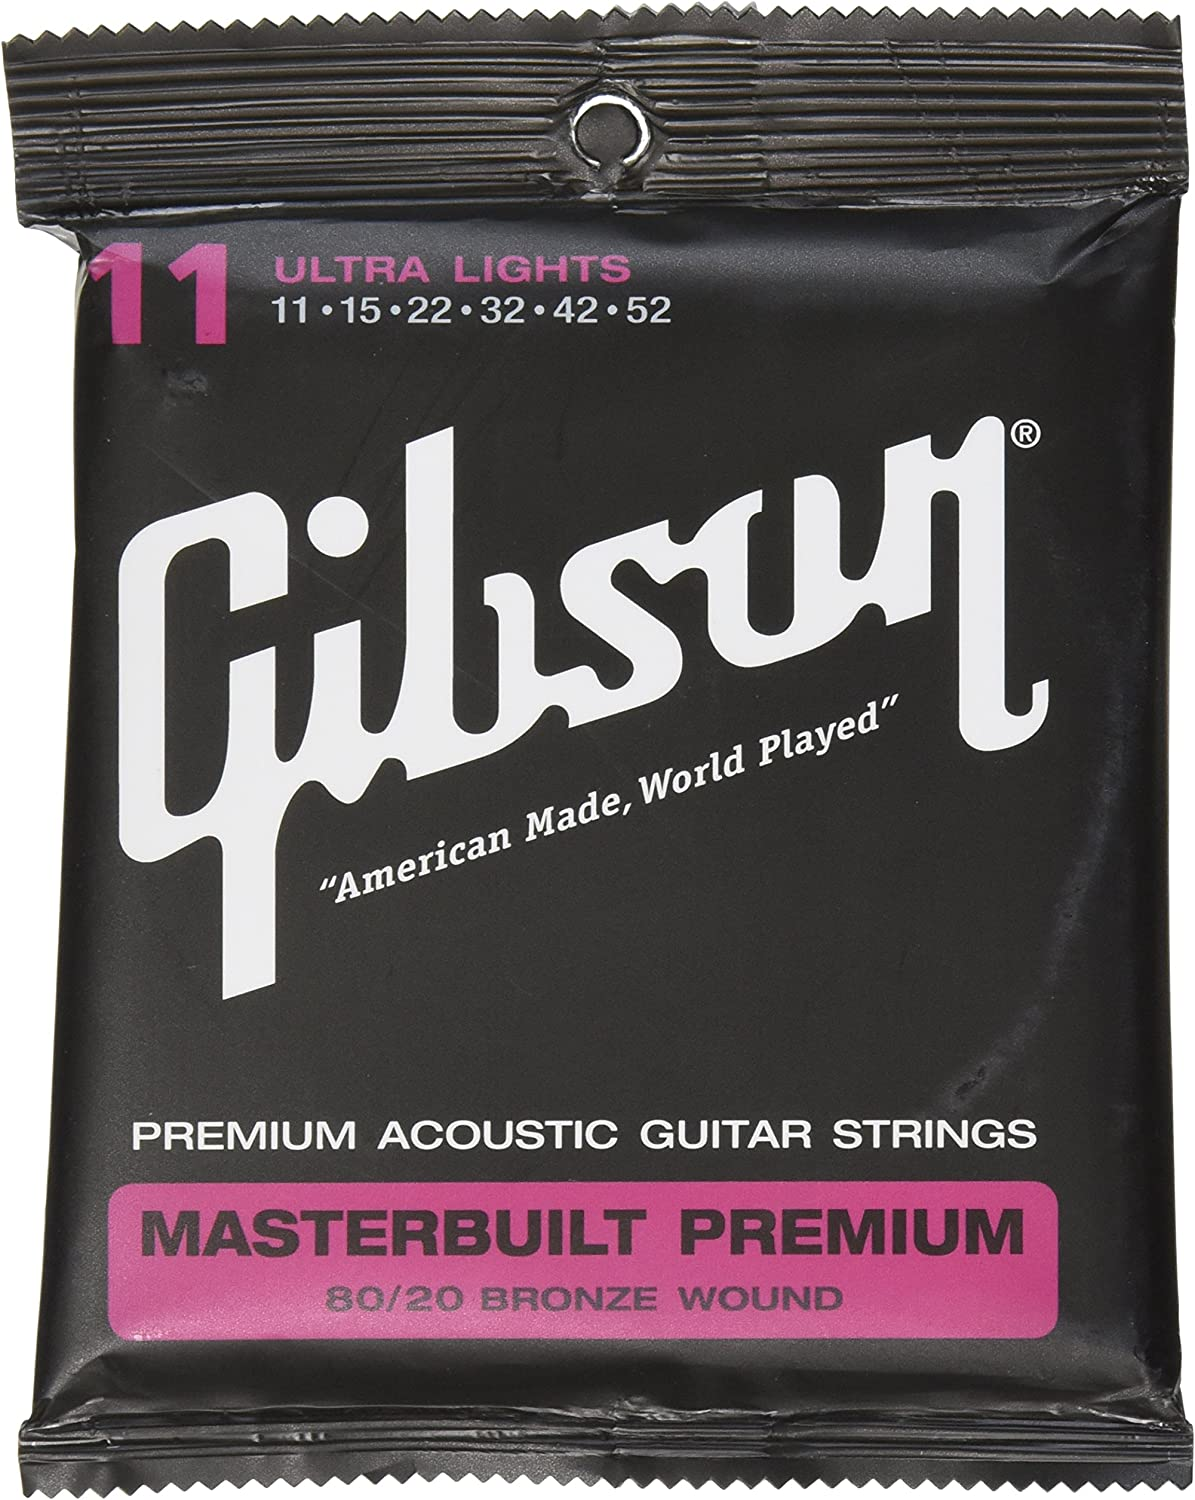 Gibson Masterbuilt Premium 80/20 Bronze Acoustic Guitar Strings 11-52 Ultra Lights